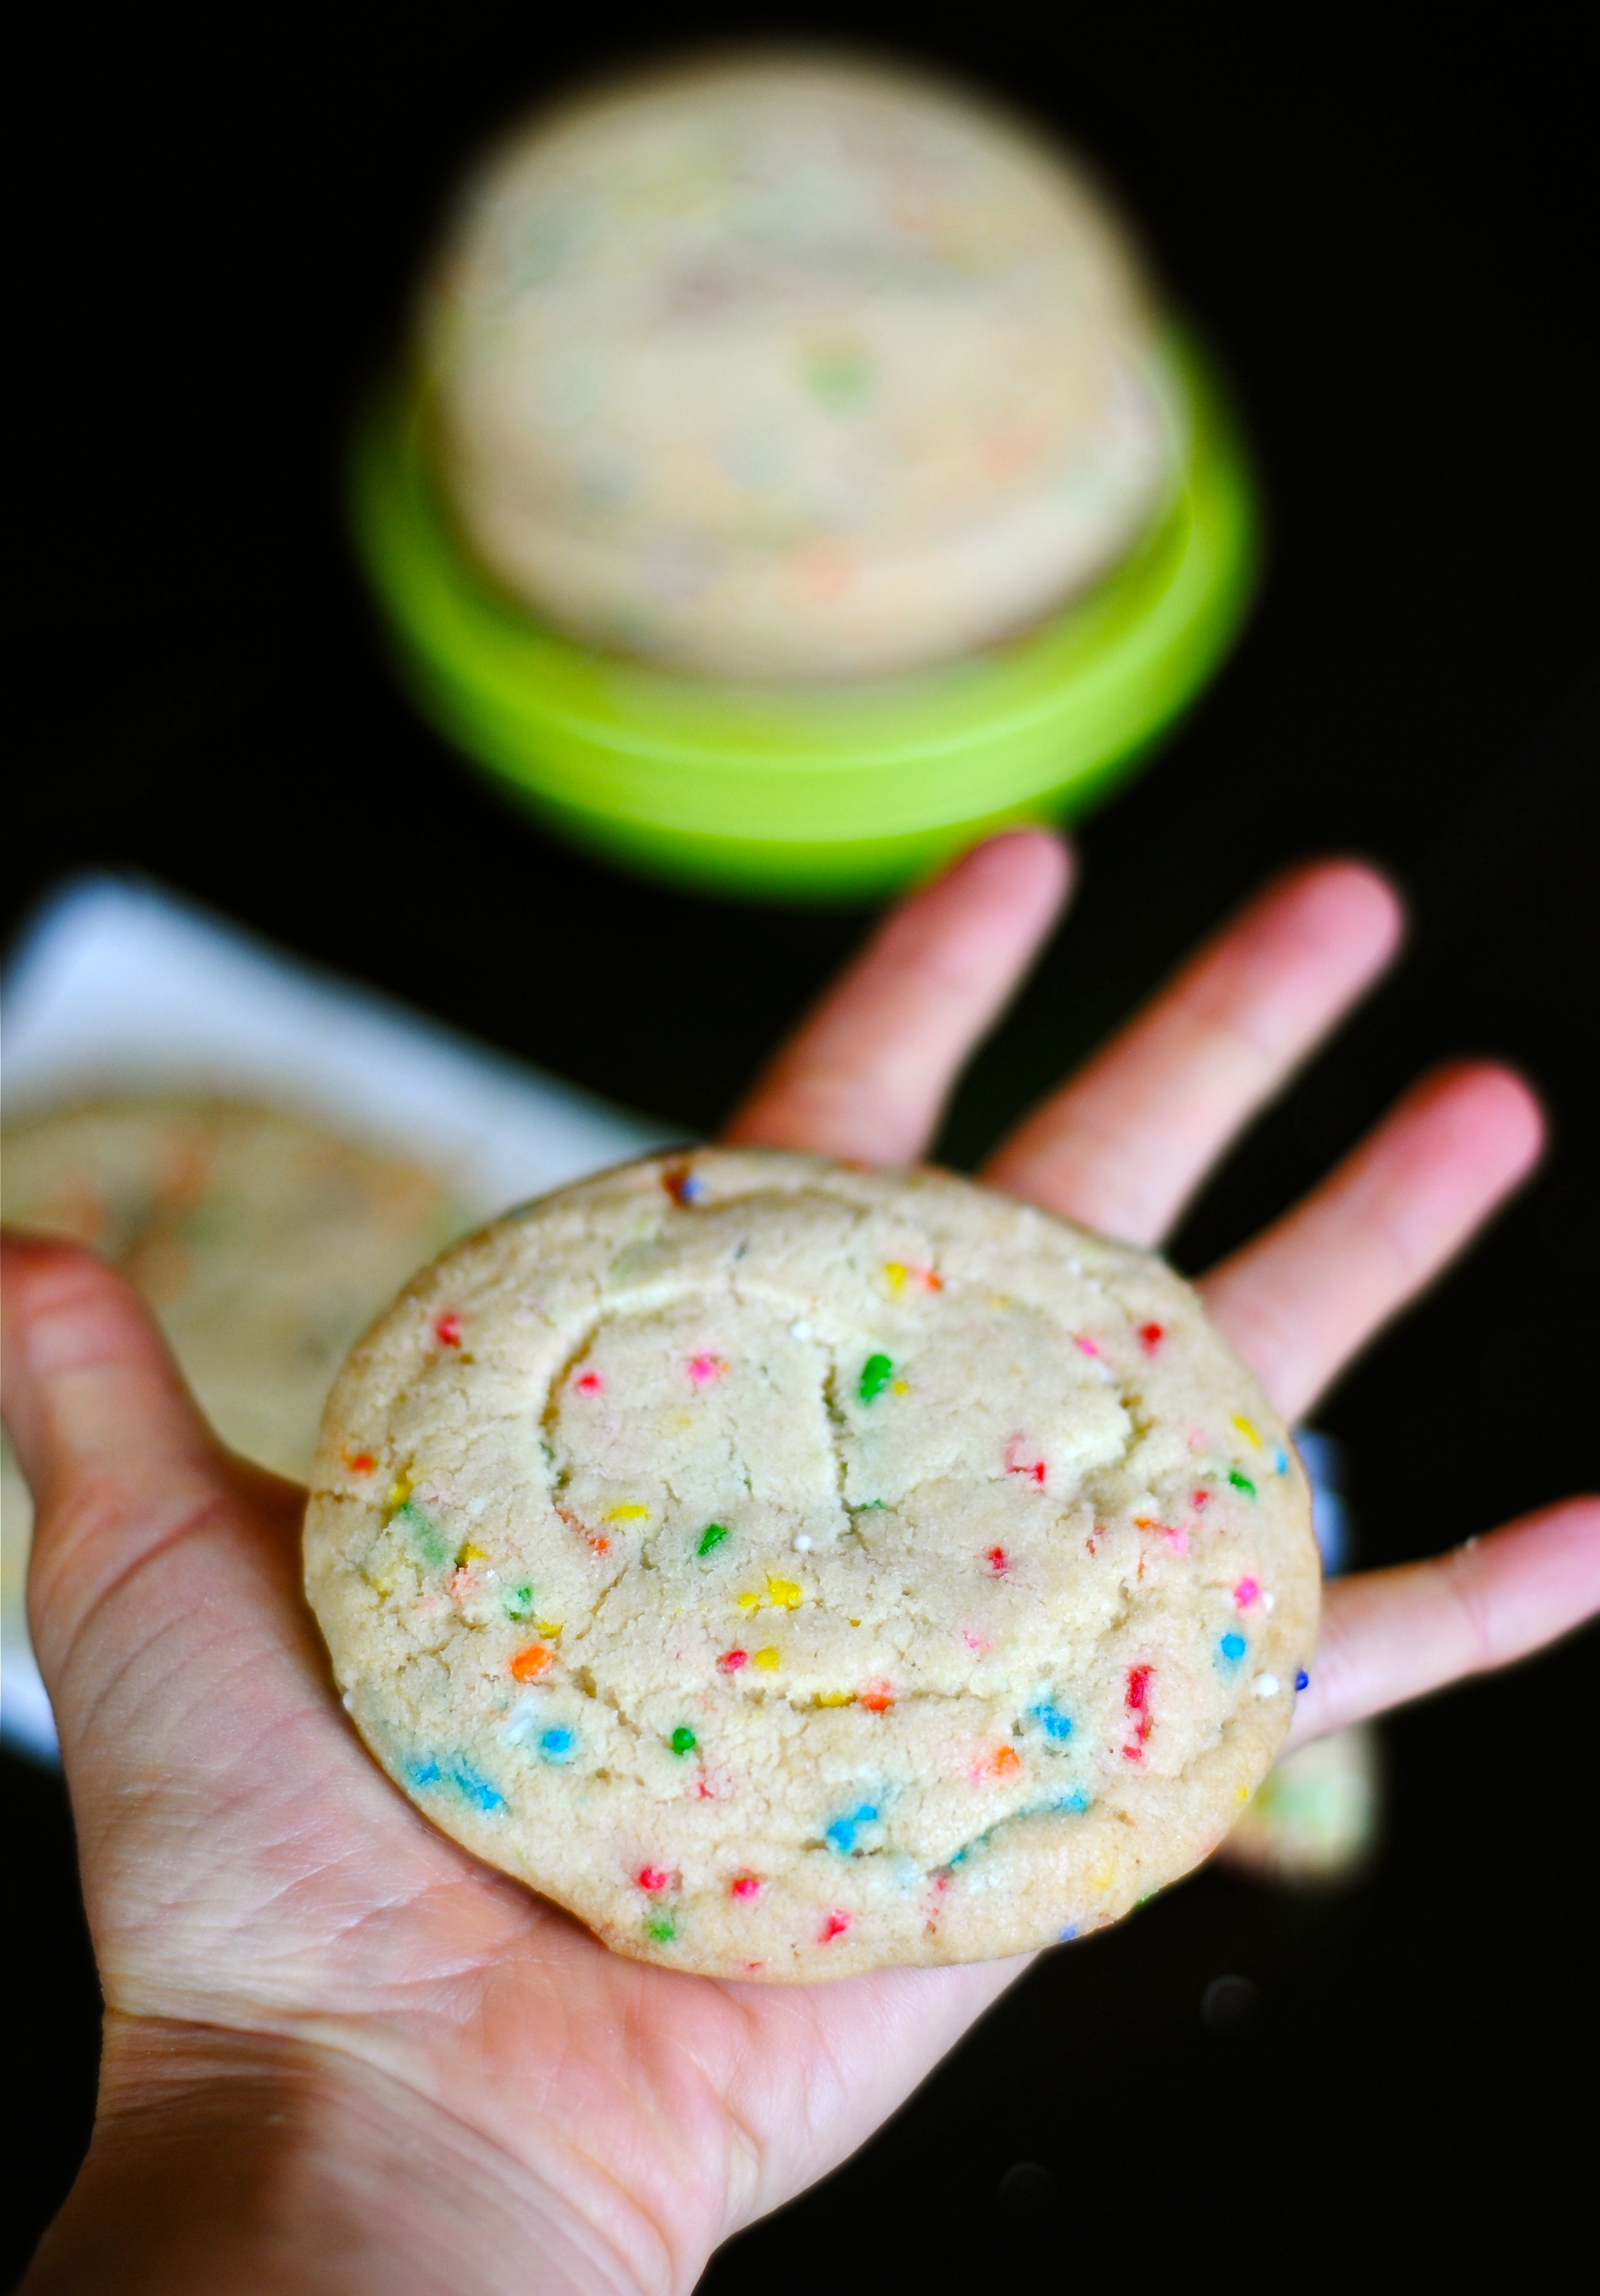 Home » Cookies » Funfetti Cookies » confetti cookies 3